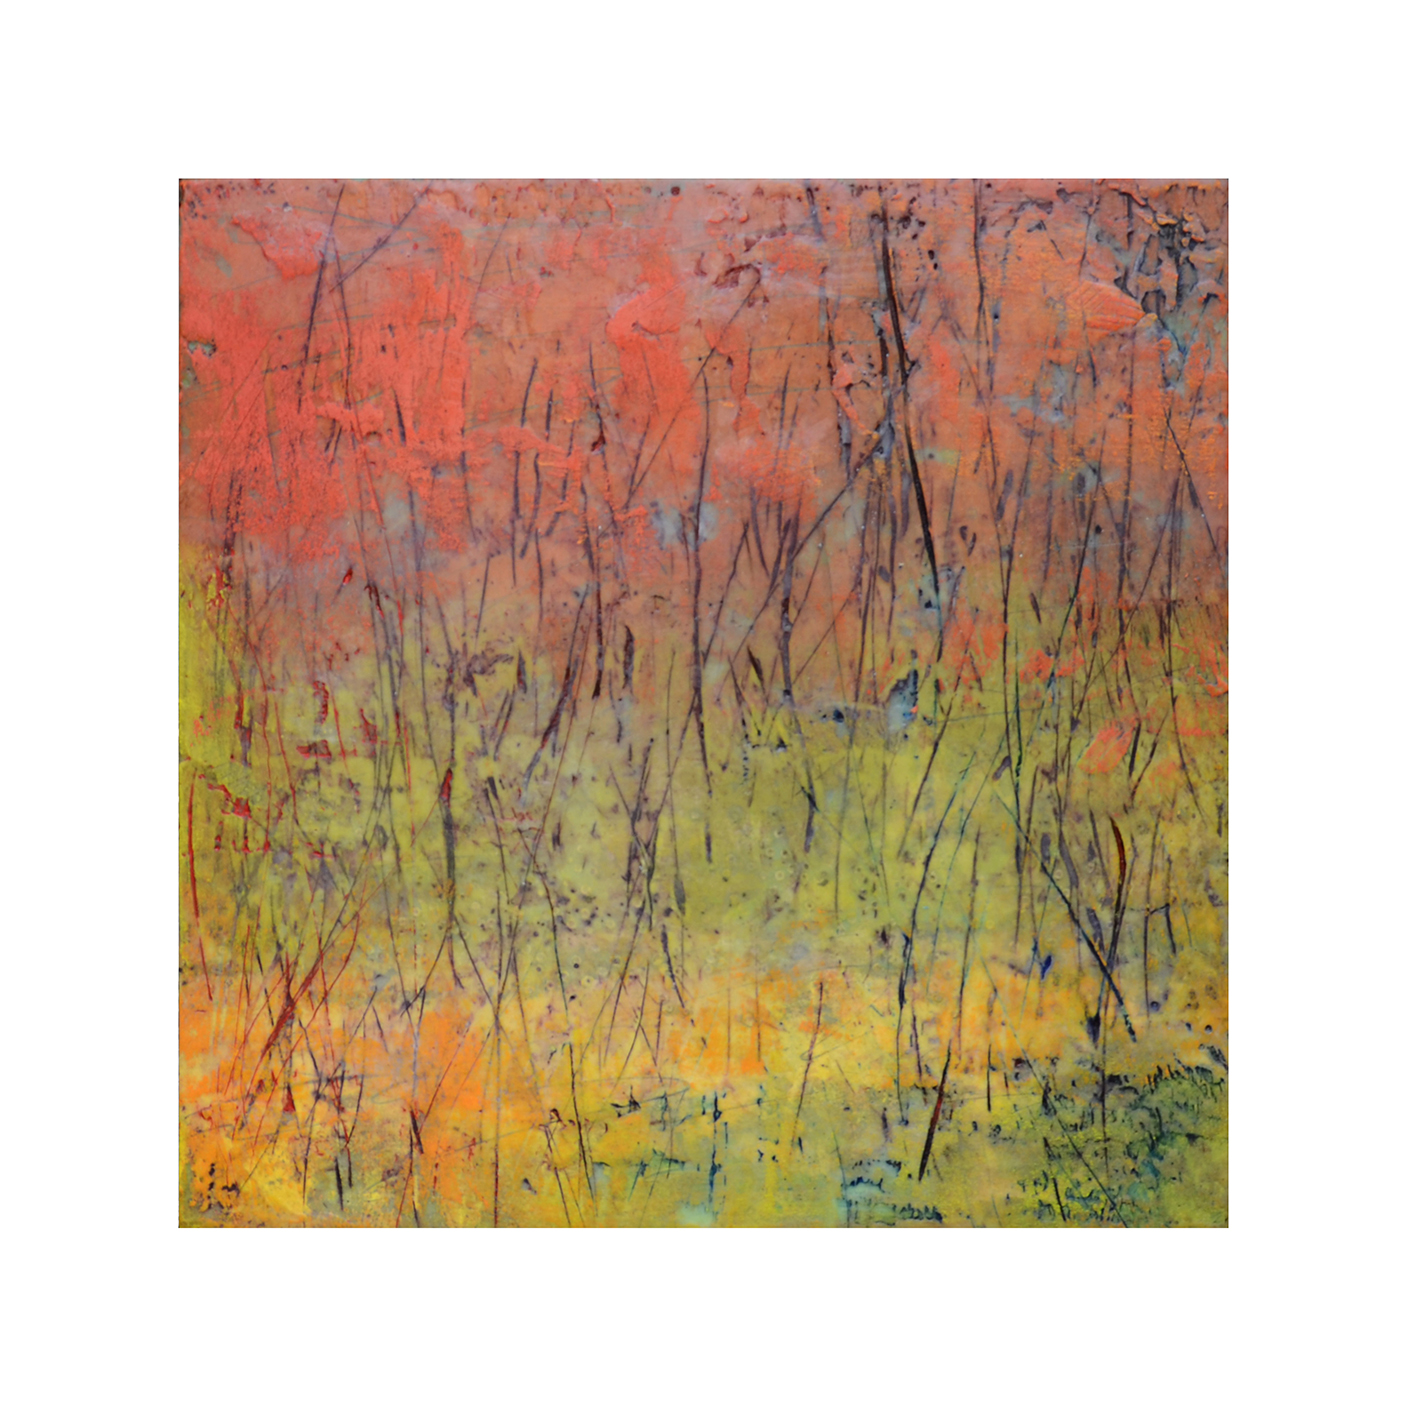 Thicket 1   12 x 12  Encaustic on Panel  $300